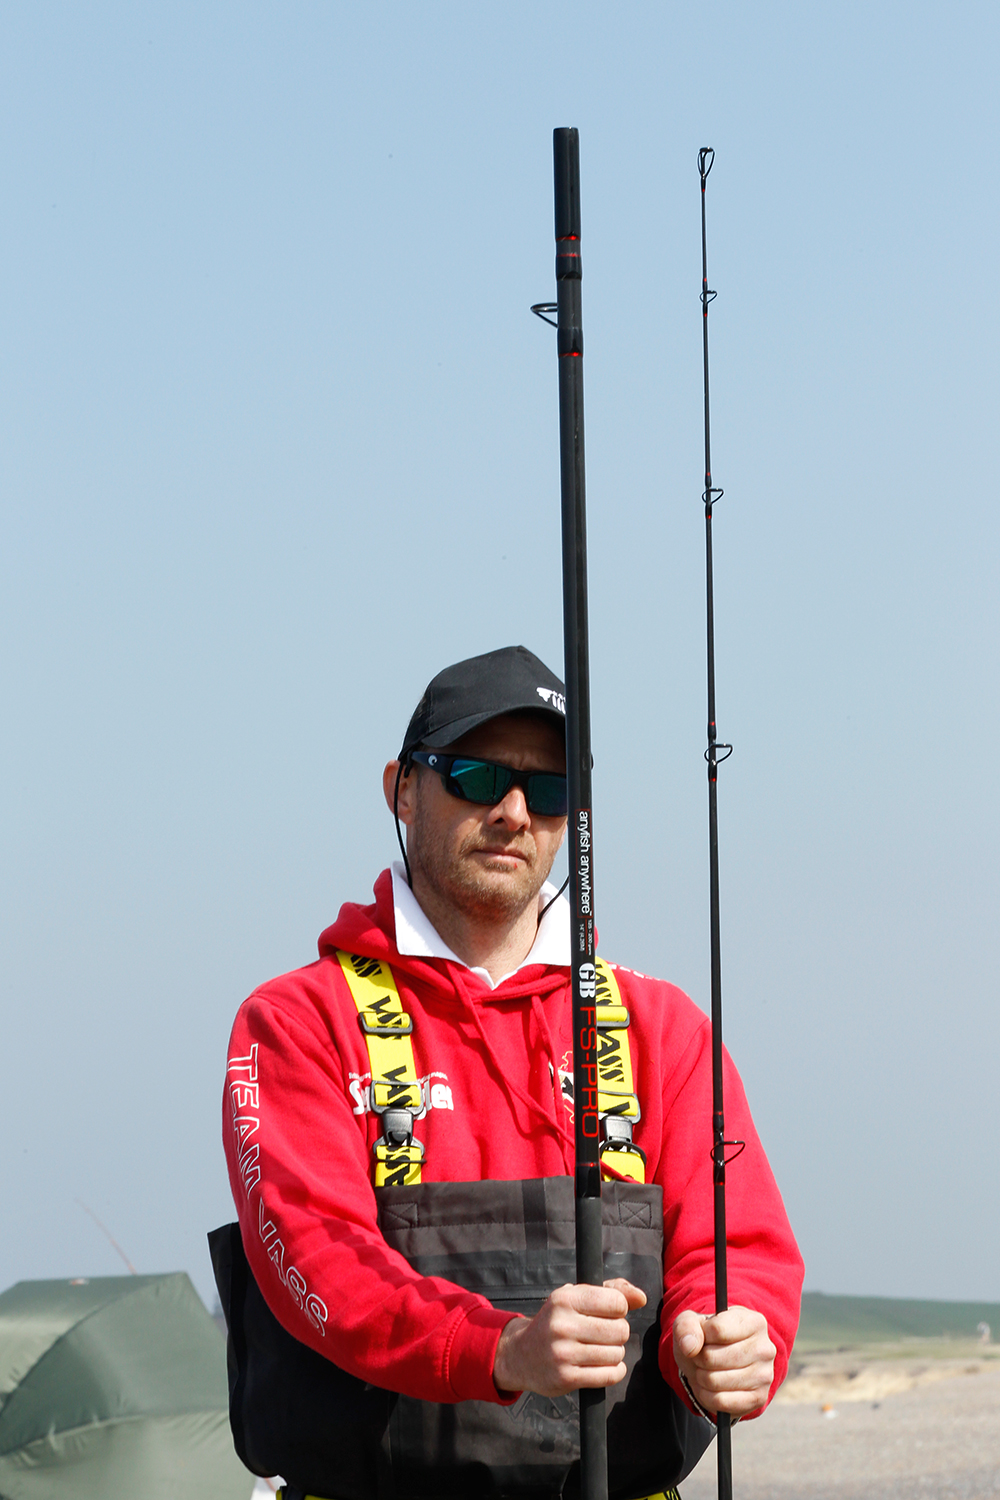 The new Anyfish Anywhere rod is made in two equal sections